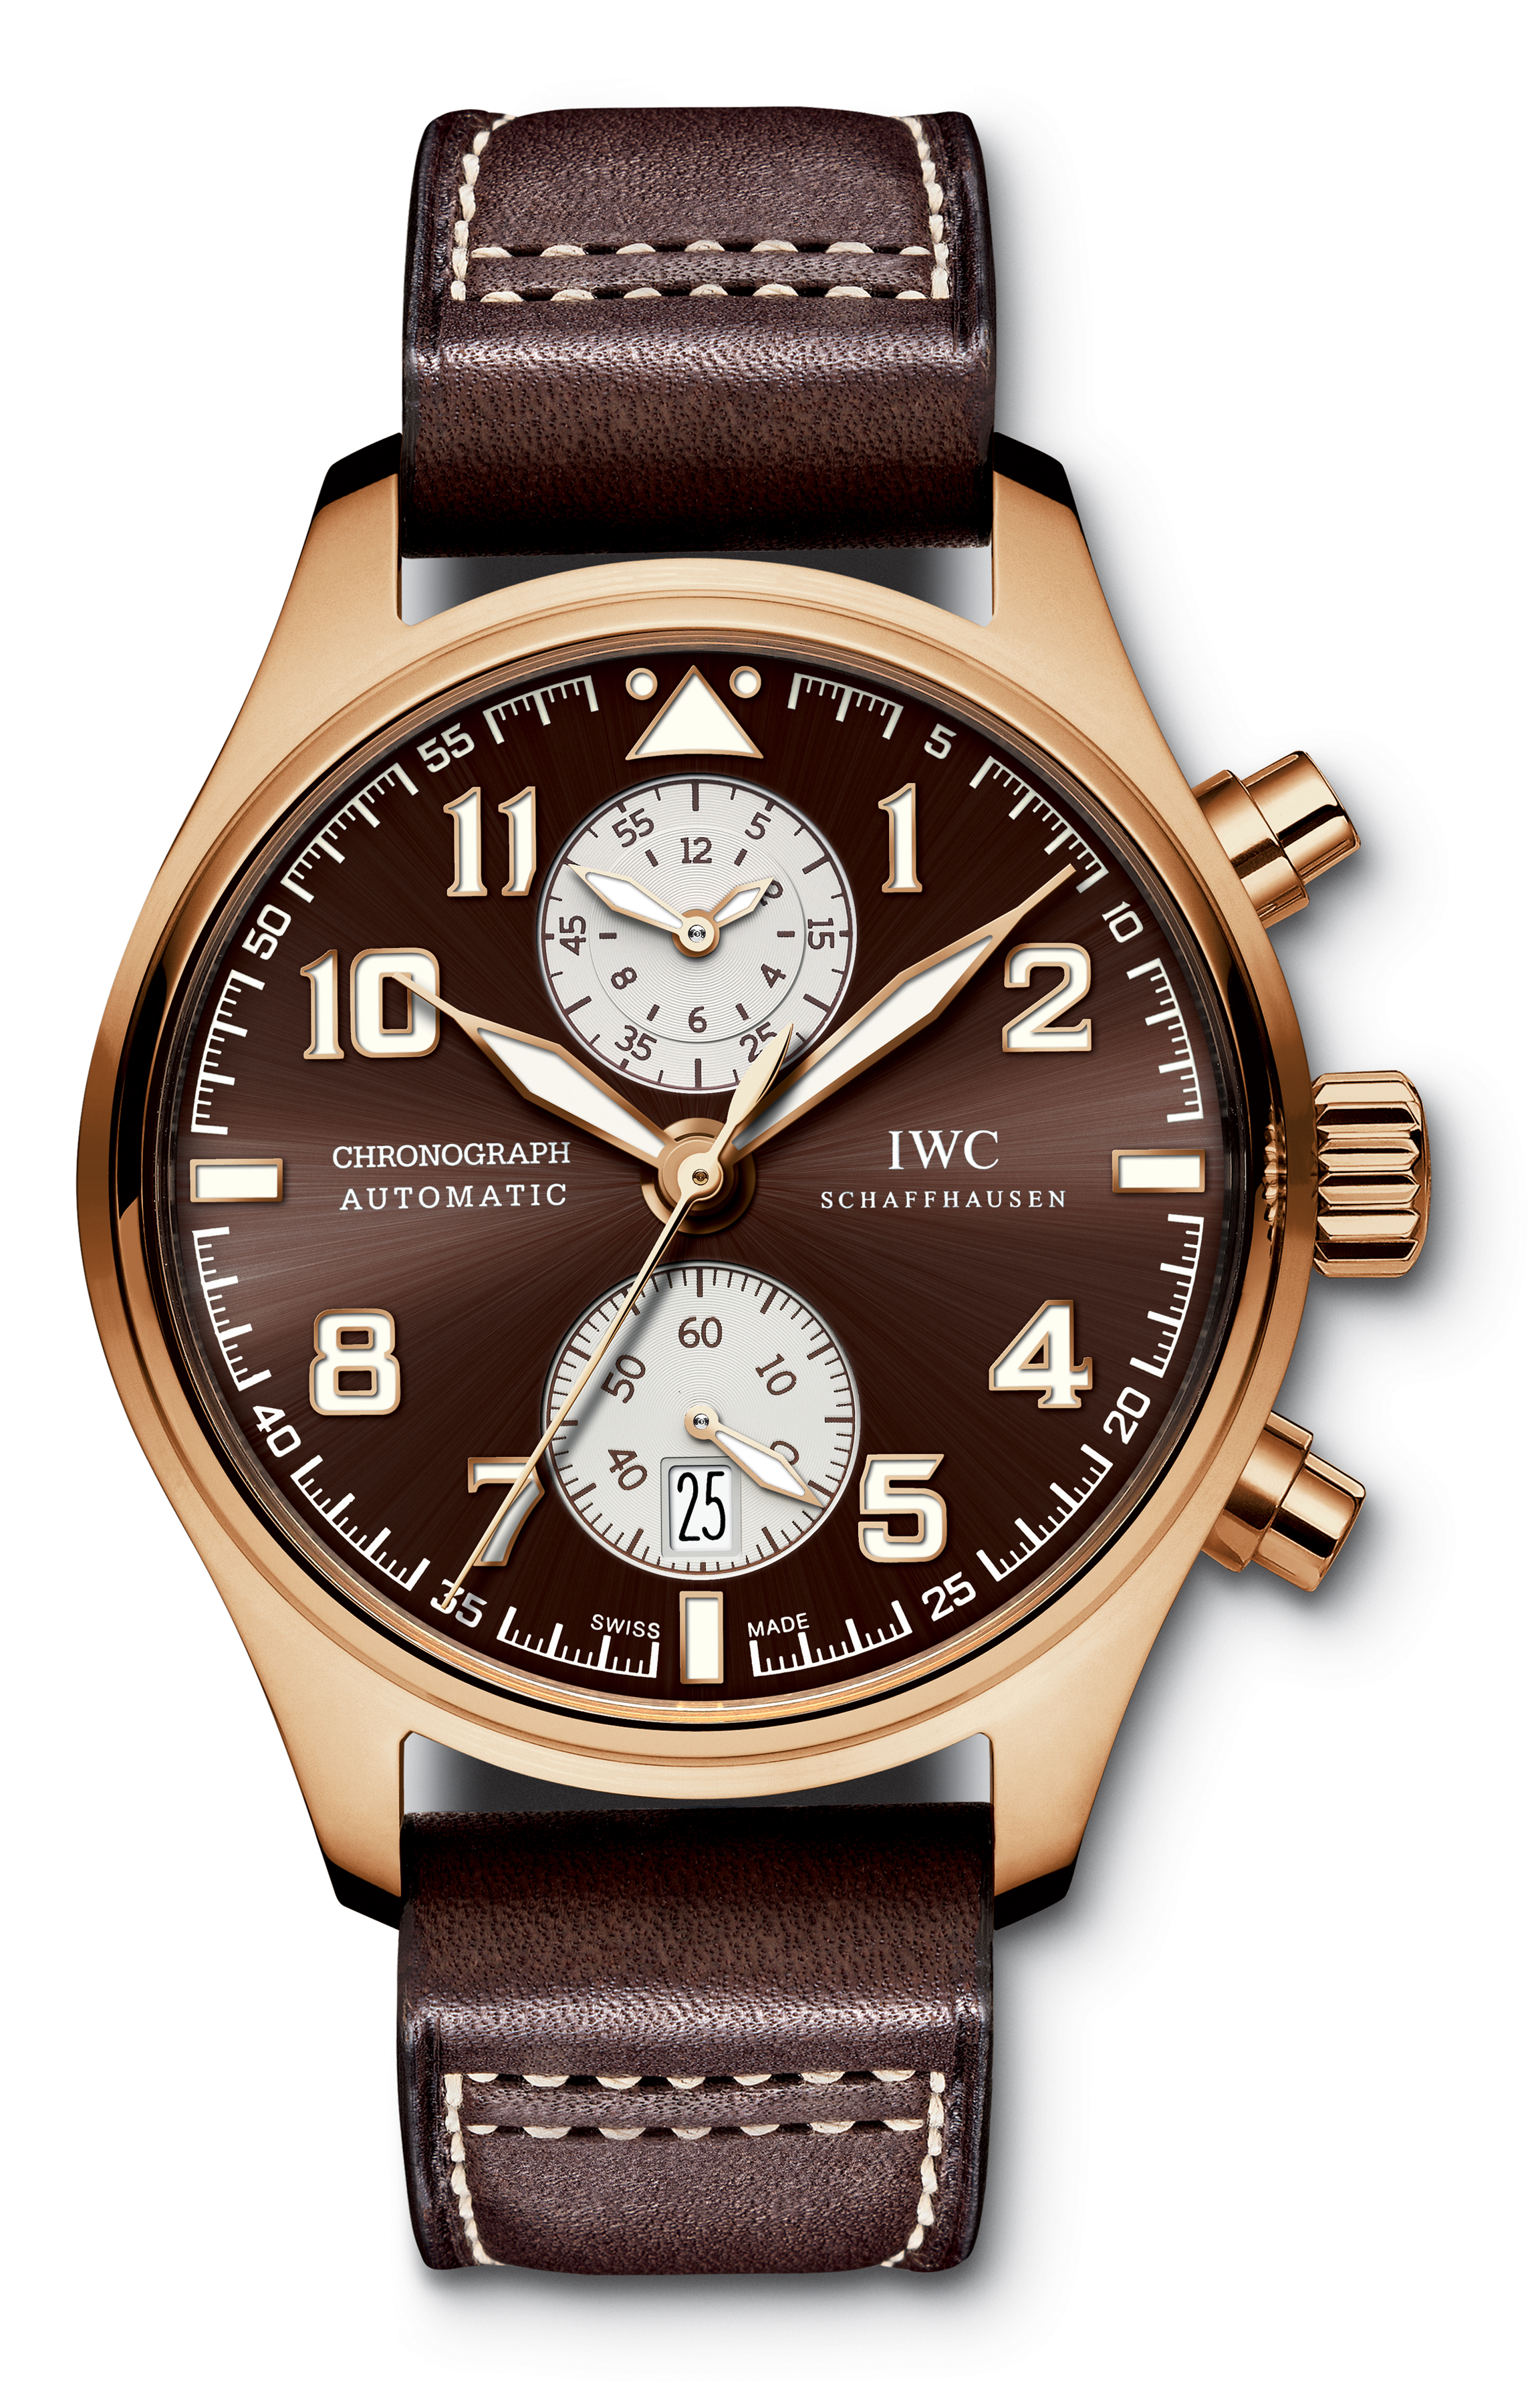 ixlib articles watches for hands and models pricing gold steel calendar chrono iwc vinci the both with perpetual updated davinci on in da rails chronograph